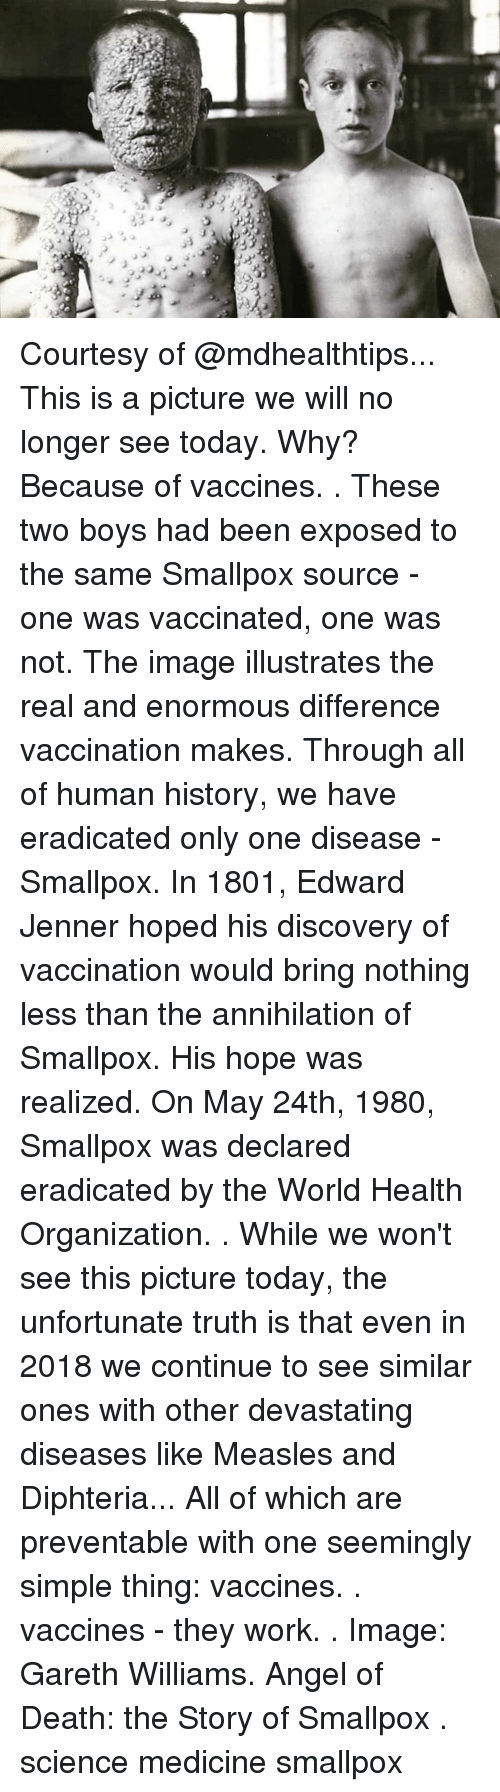 Memes, Work, and Angel: Courtesy of @mdhealthtips... This is a picture we will no longer see today. Why? Because of vaccines. . These two boys had been exposed to the same Smallpox source - one was vaccinated, one was not. The image illustrates the real and enormous difference vaccination makes. Through all of human history, we have eradicated only one disease - Smallpox. In 1801, Edward Jenner hoped his discovery of vaccination would bring nothing less than the annihilation of Smallpox. His hope was realized. On May 24th, 1980, Smallpox was declared eradicated by the World Health Organization. . While we won't see this picture today, the unfortunate truth is that even in 2018 we continue to see similar ones with other devastating diseases like Measles and Diphteria... All of which are preventable with one seemingly simple thing: vaccines. . vaccines - they work. . Image: Gareth Williams. Angel of Death: the Story of Smallpox . science medicine smallpox